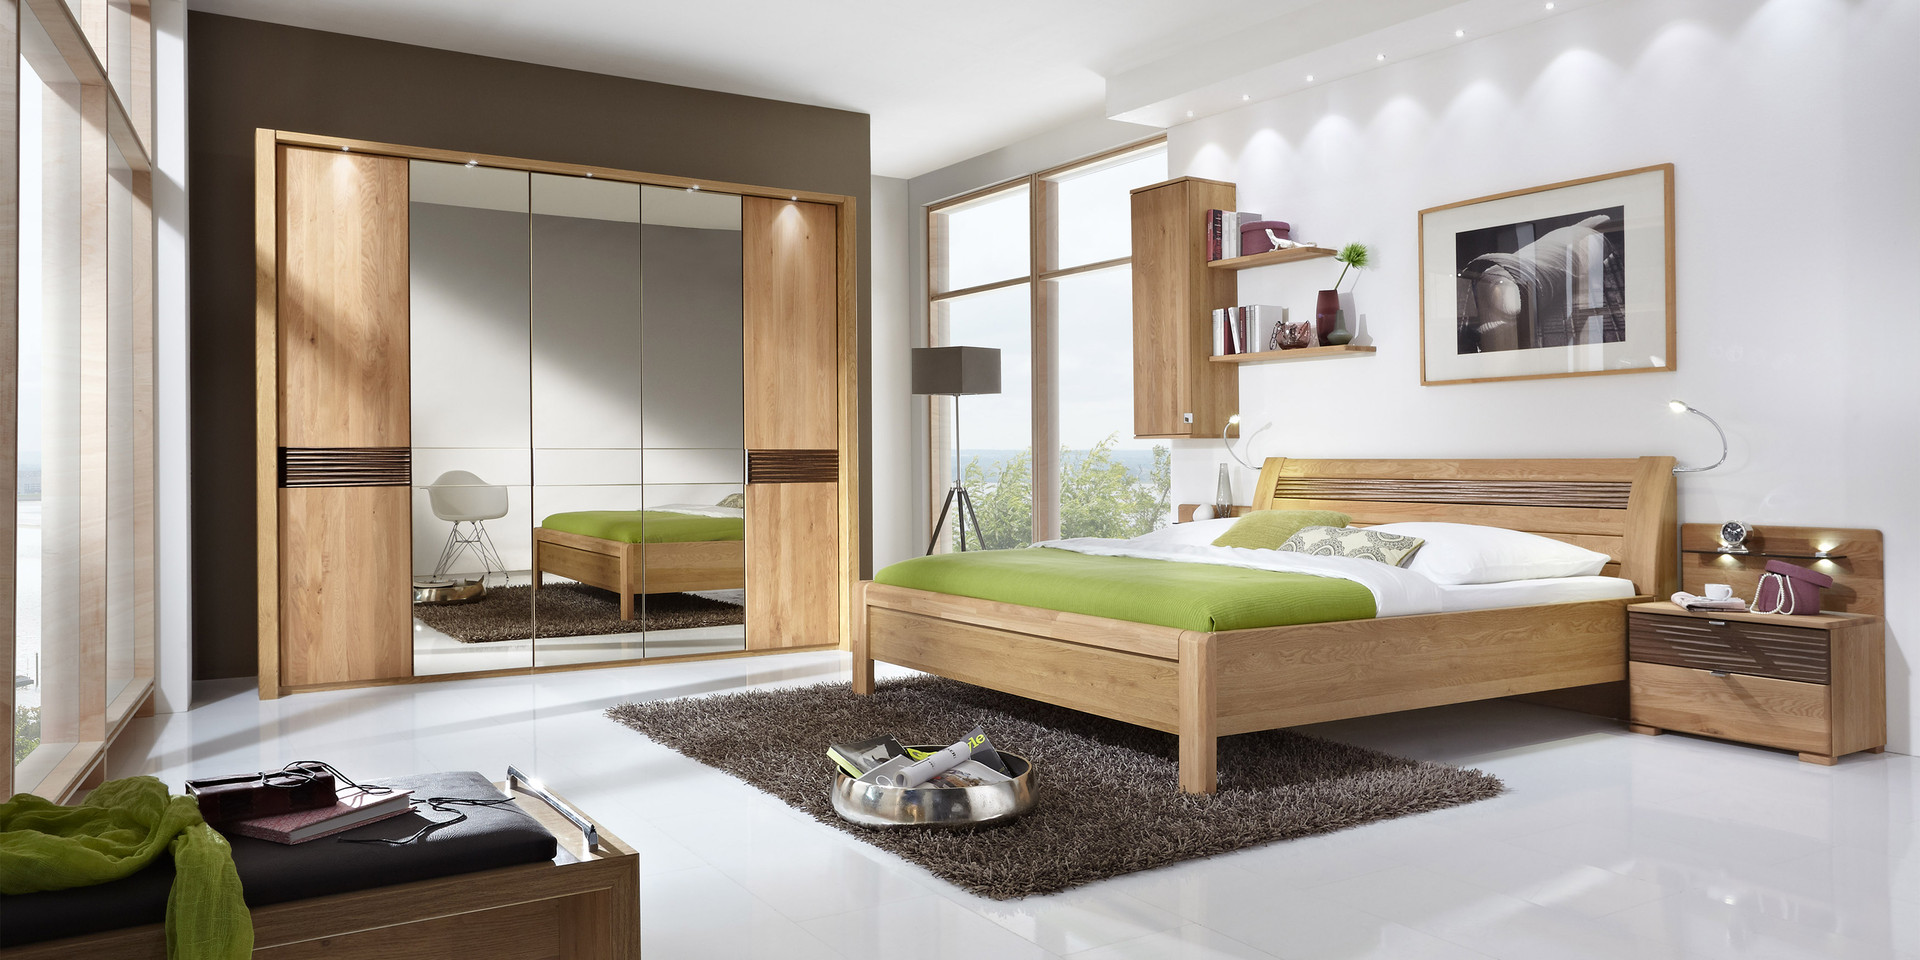 ikea malm einrichtungstipps. Black Bedroom Furniture Sets. Home Design Ideas